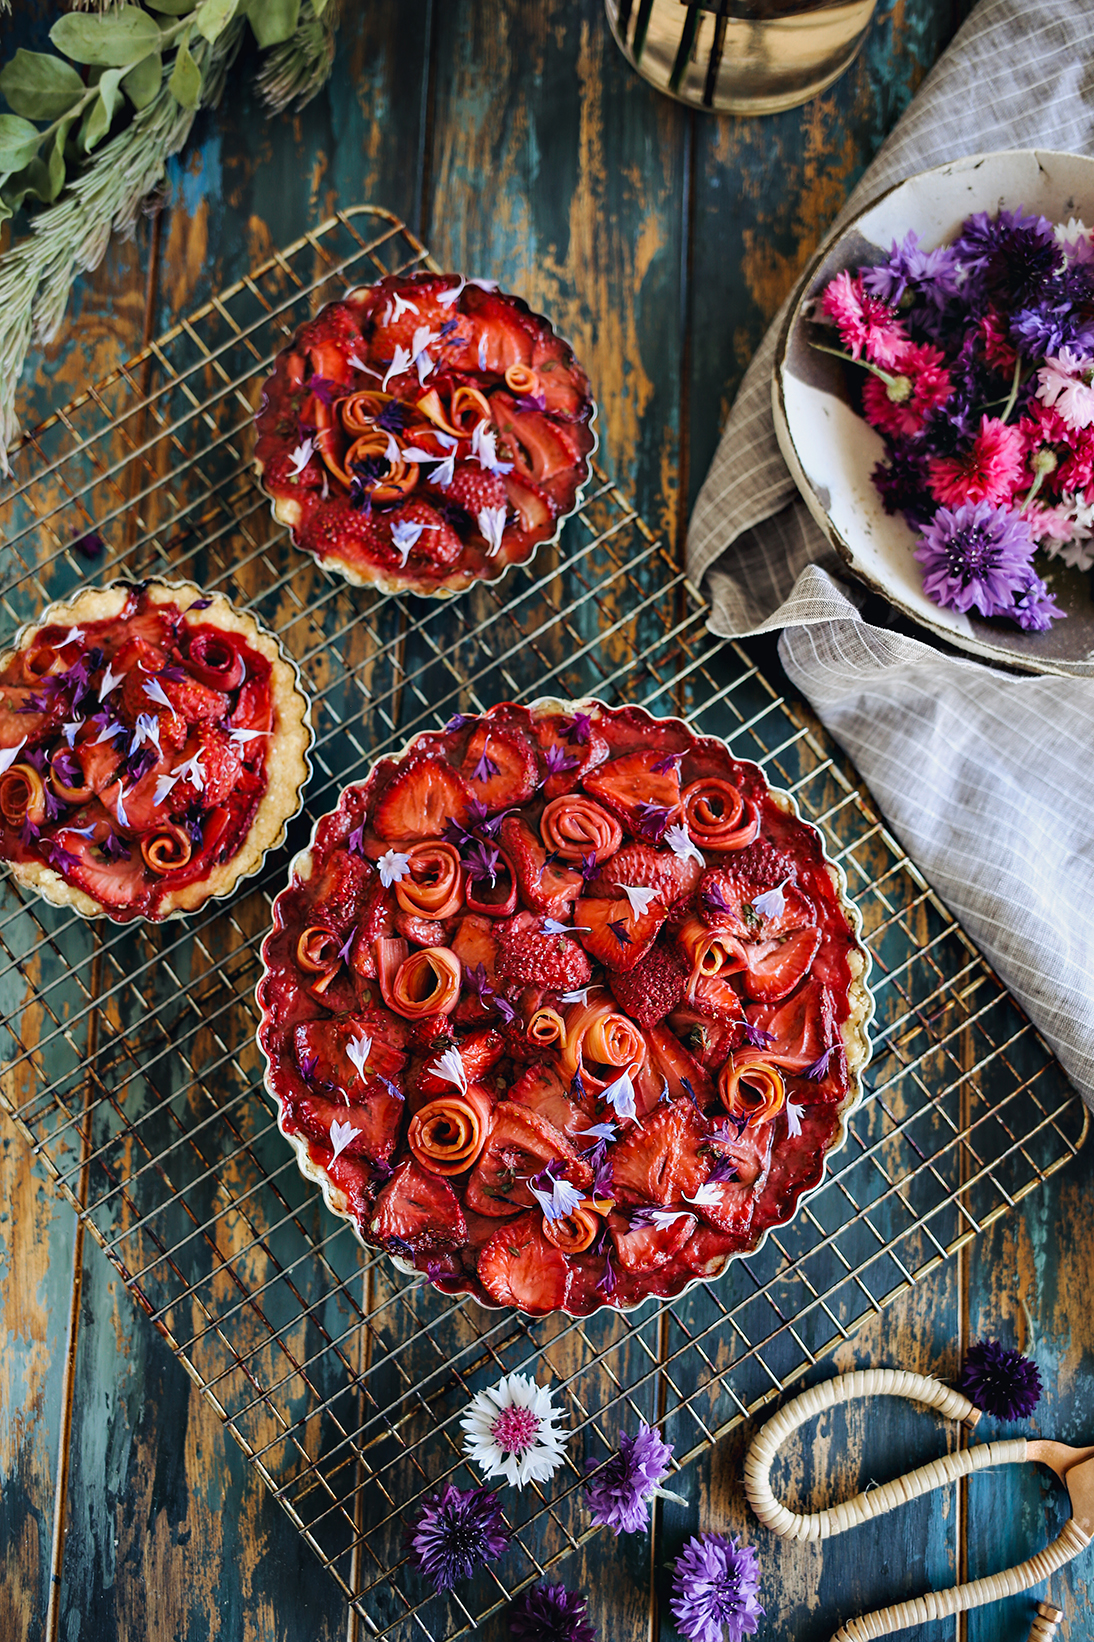 05_Strawberry & Rhubarb Balsamic Tart.jpg